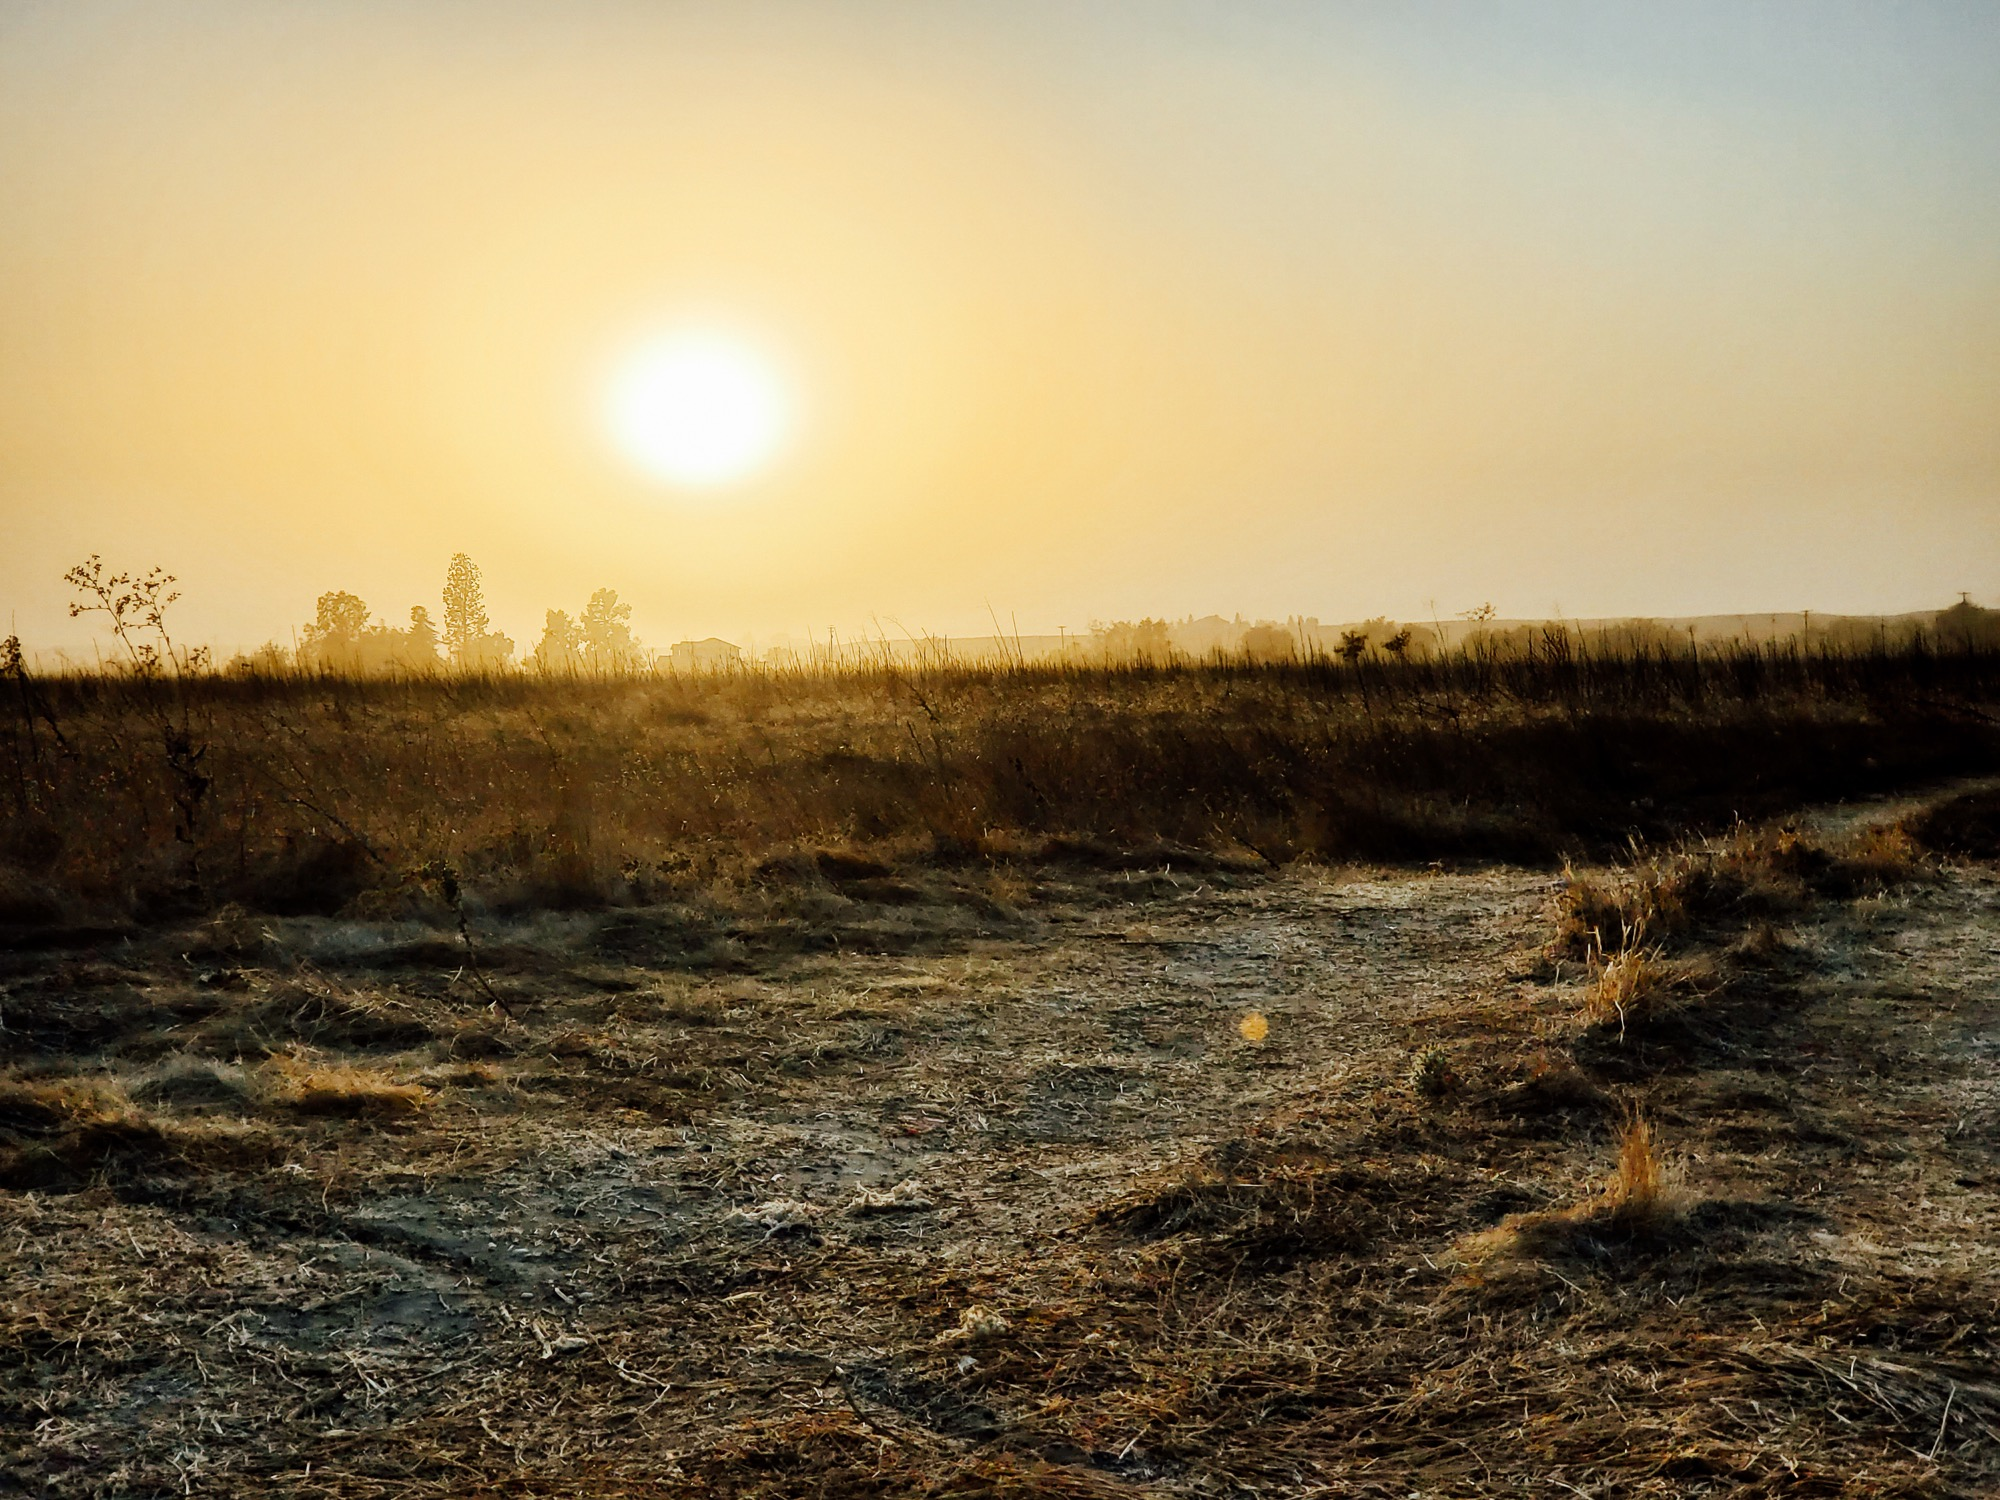 the sun casts an mustard glow over a dusty field. a brown haze hands in the air